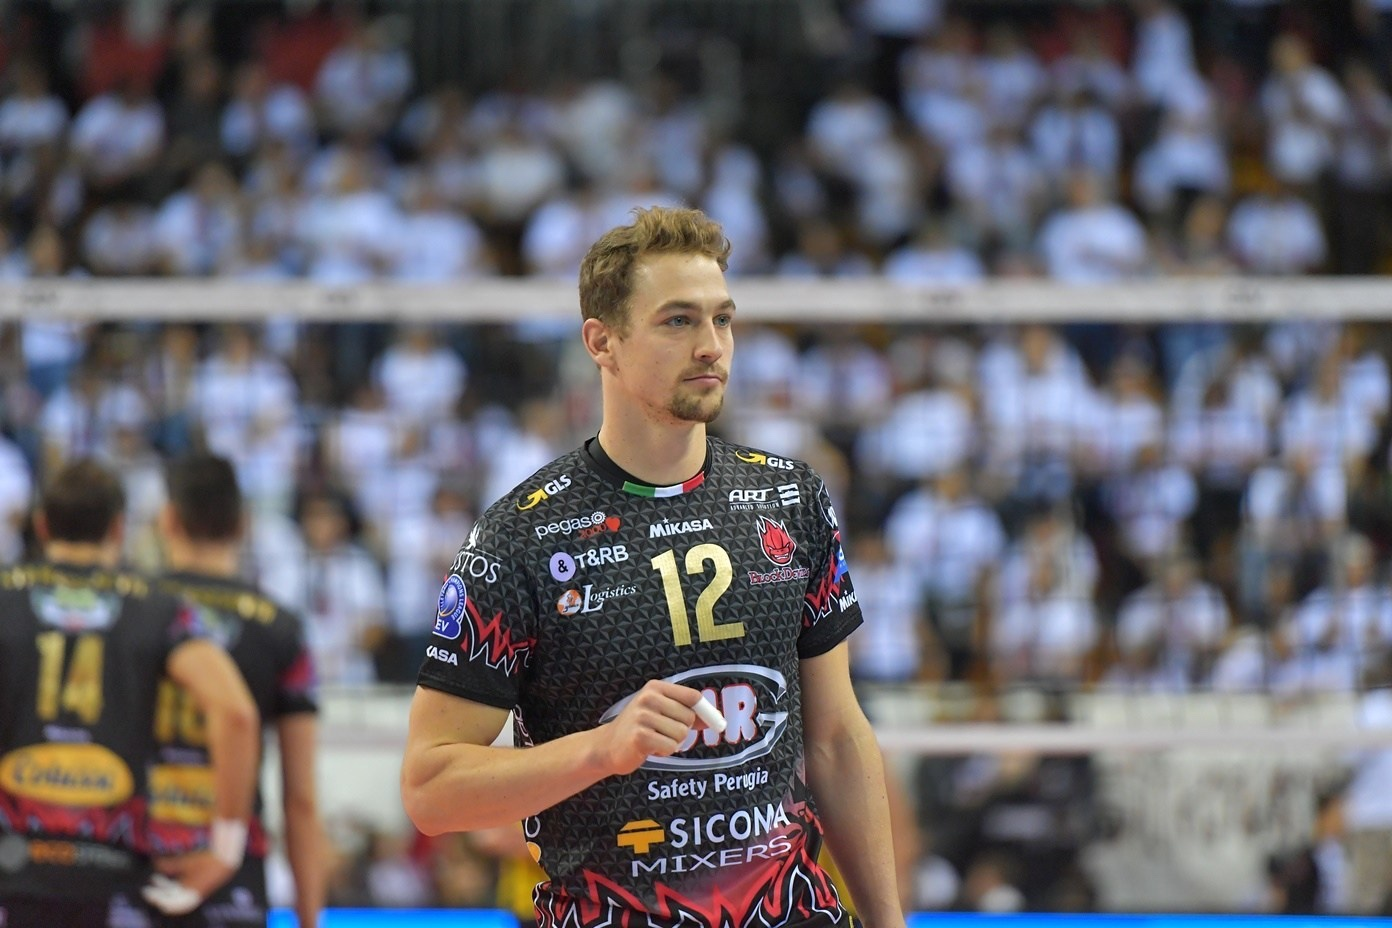 #Transfers: Ishikawa in Kioene Padova, Berger in Gas Sales Piacenza, Zhukoski to Perugia.